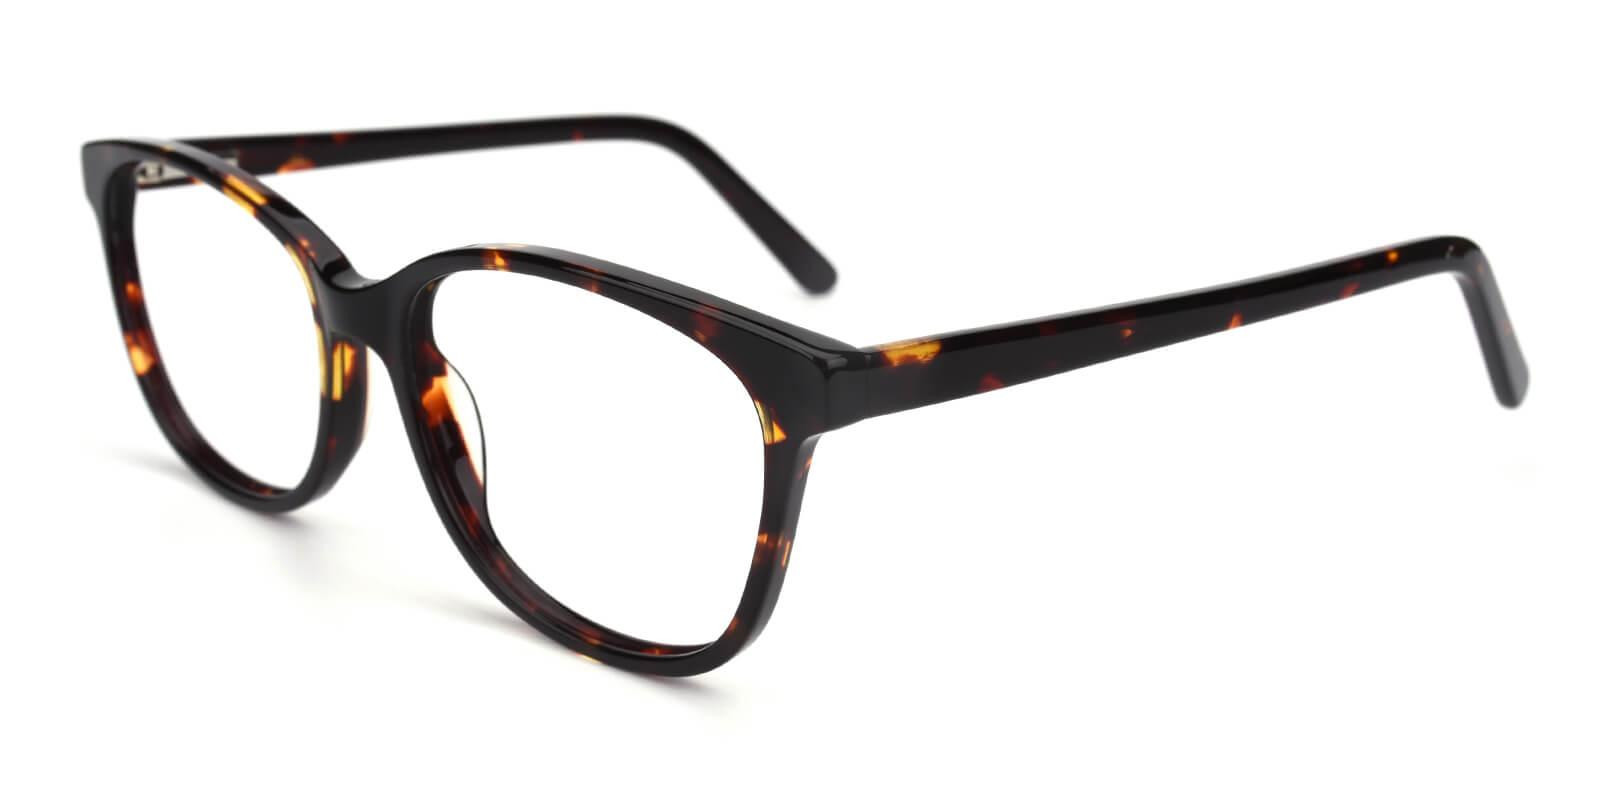 Bolivia-Tortoise-Cat-Acetate-Eyeglasses-additional1